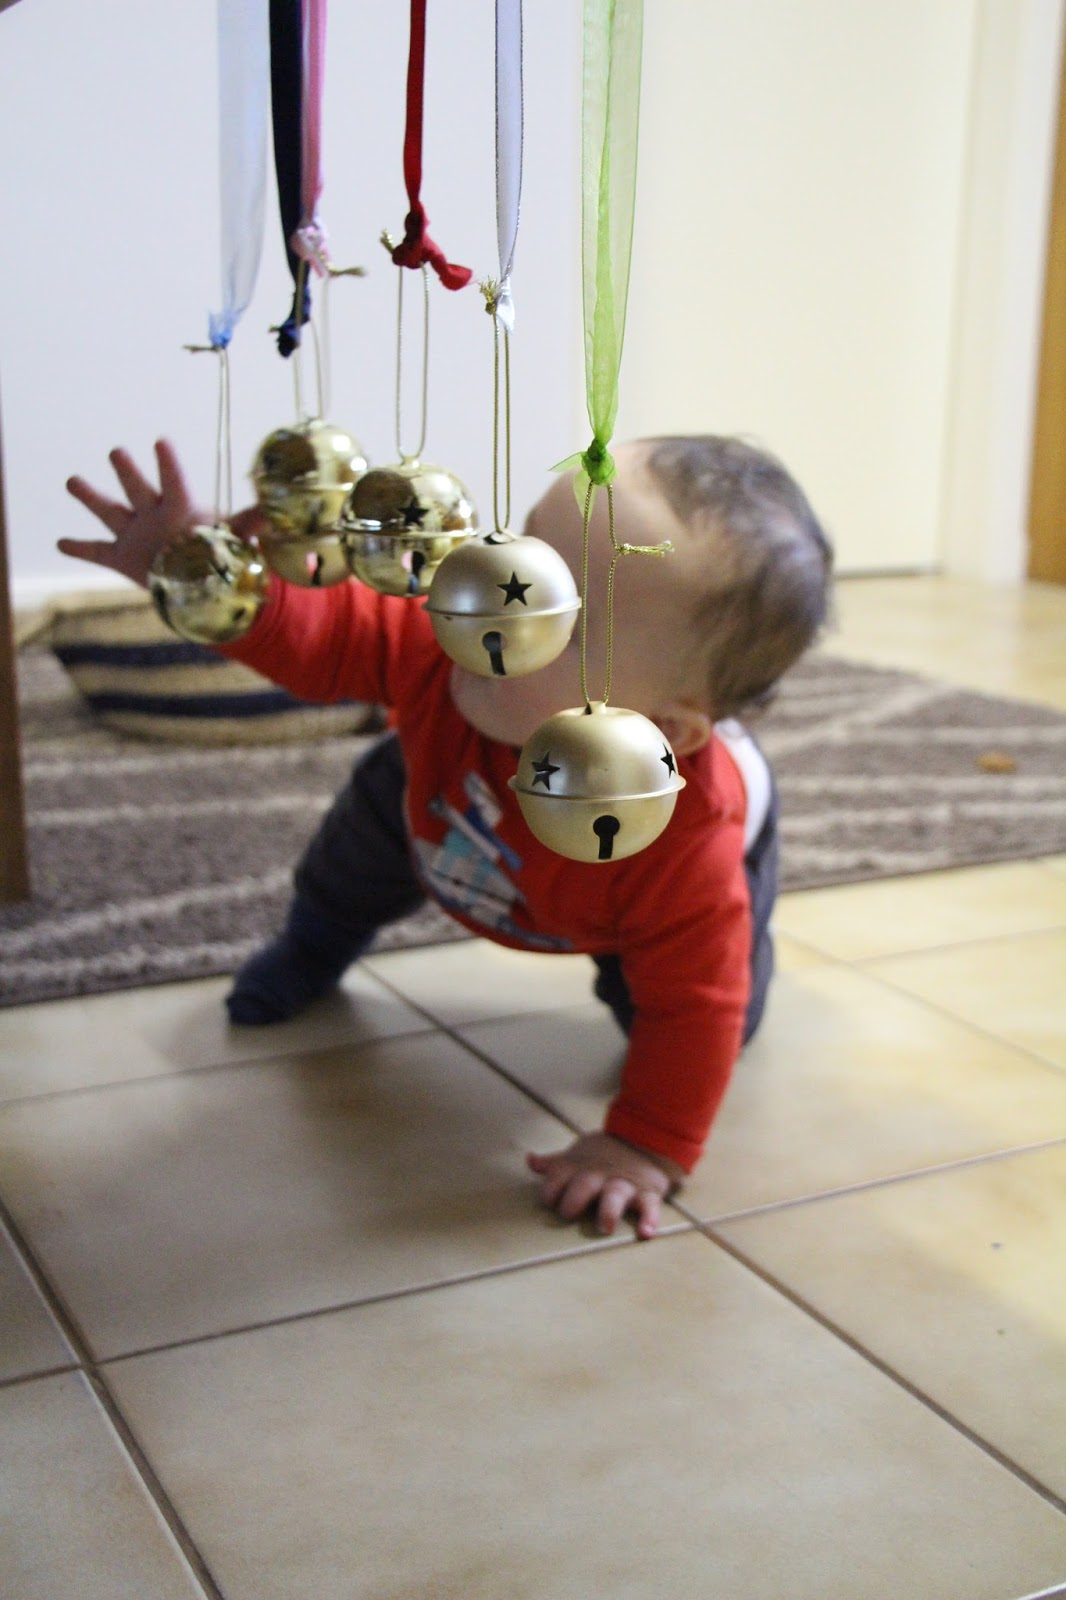 Baby reaching for a bell attached to a mobile